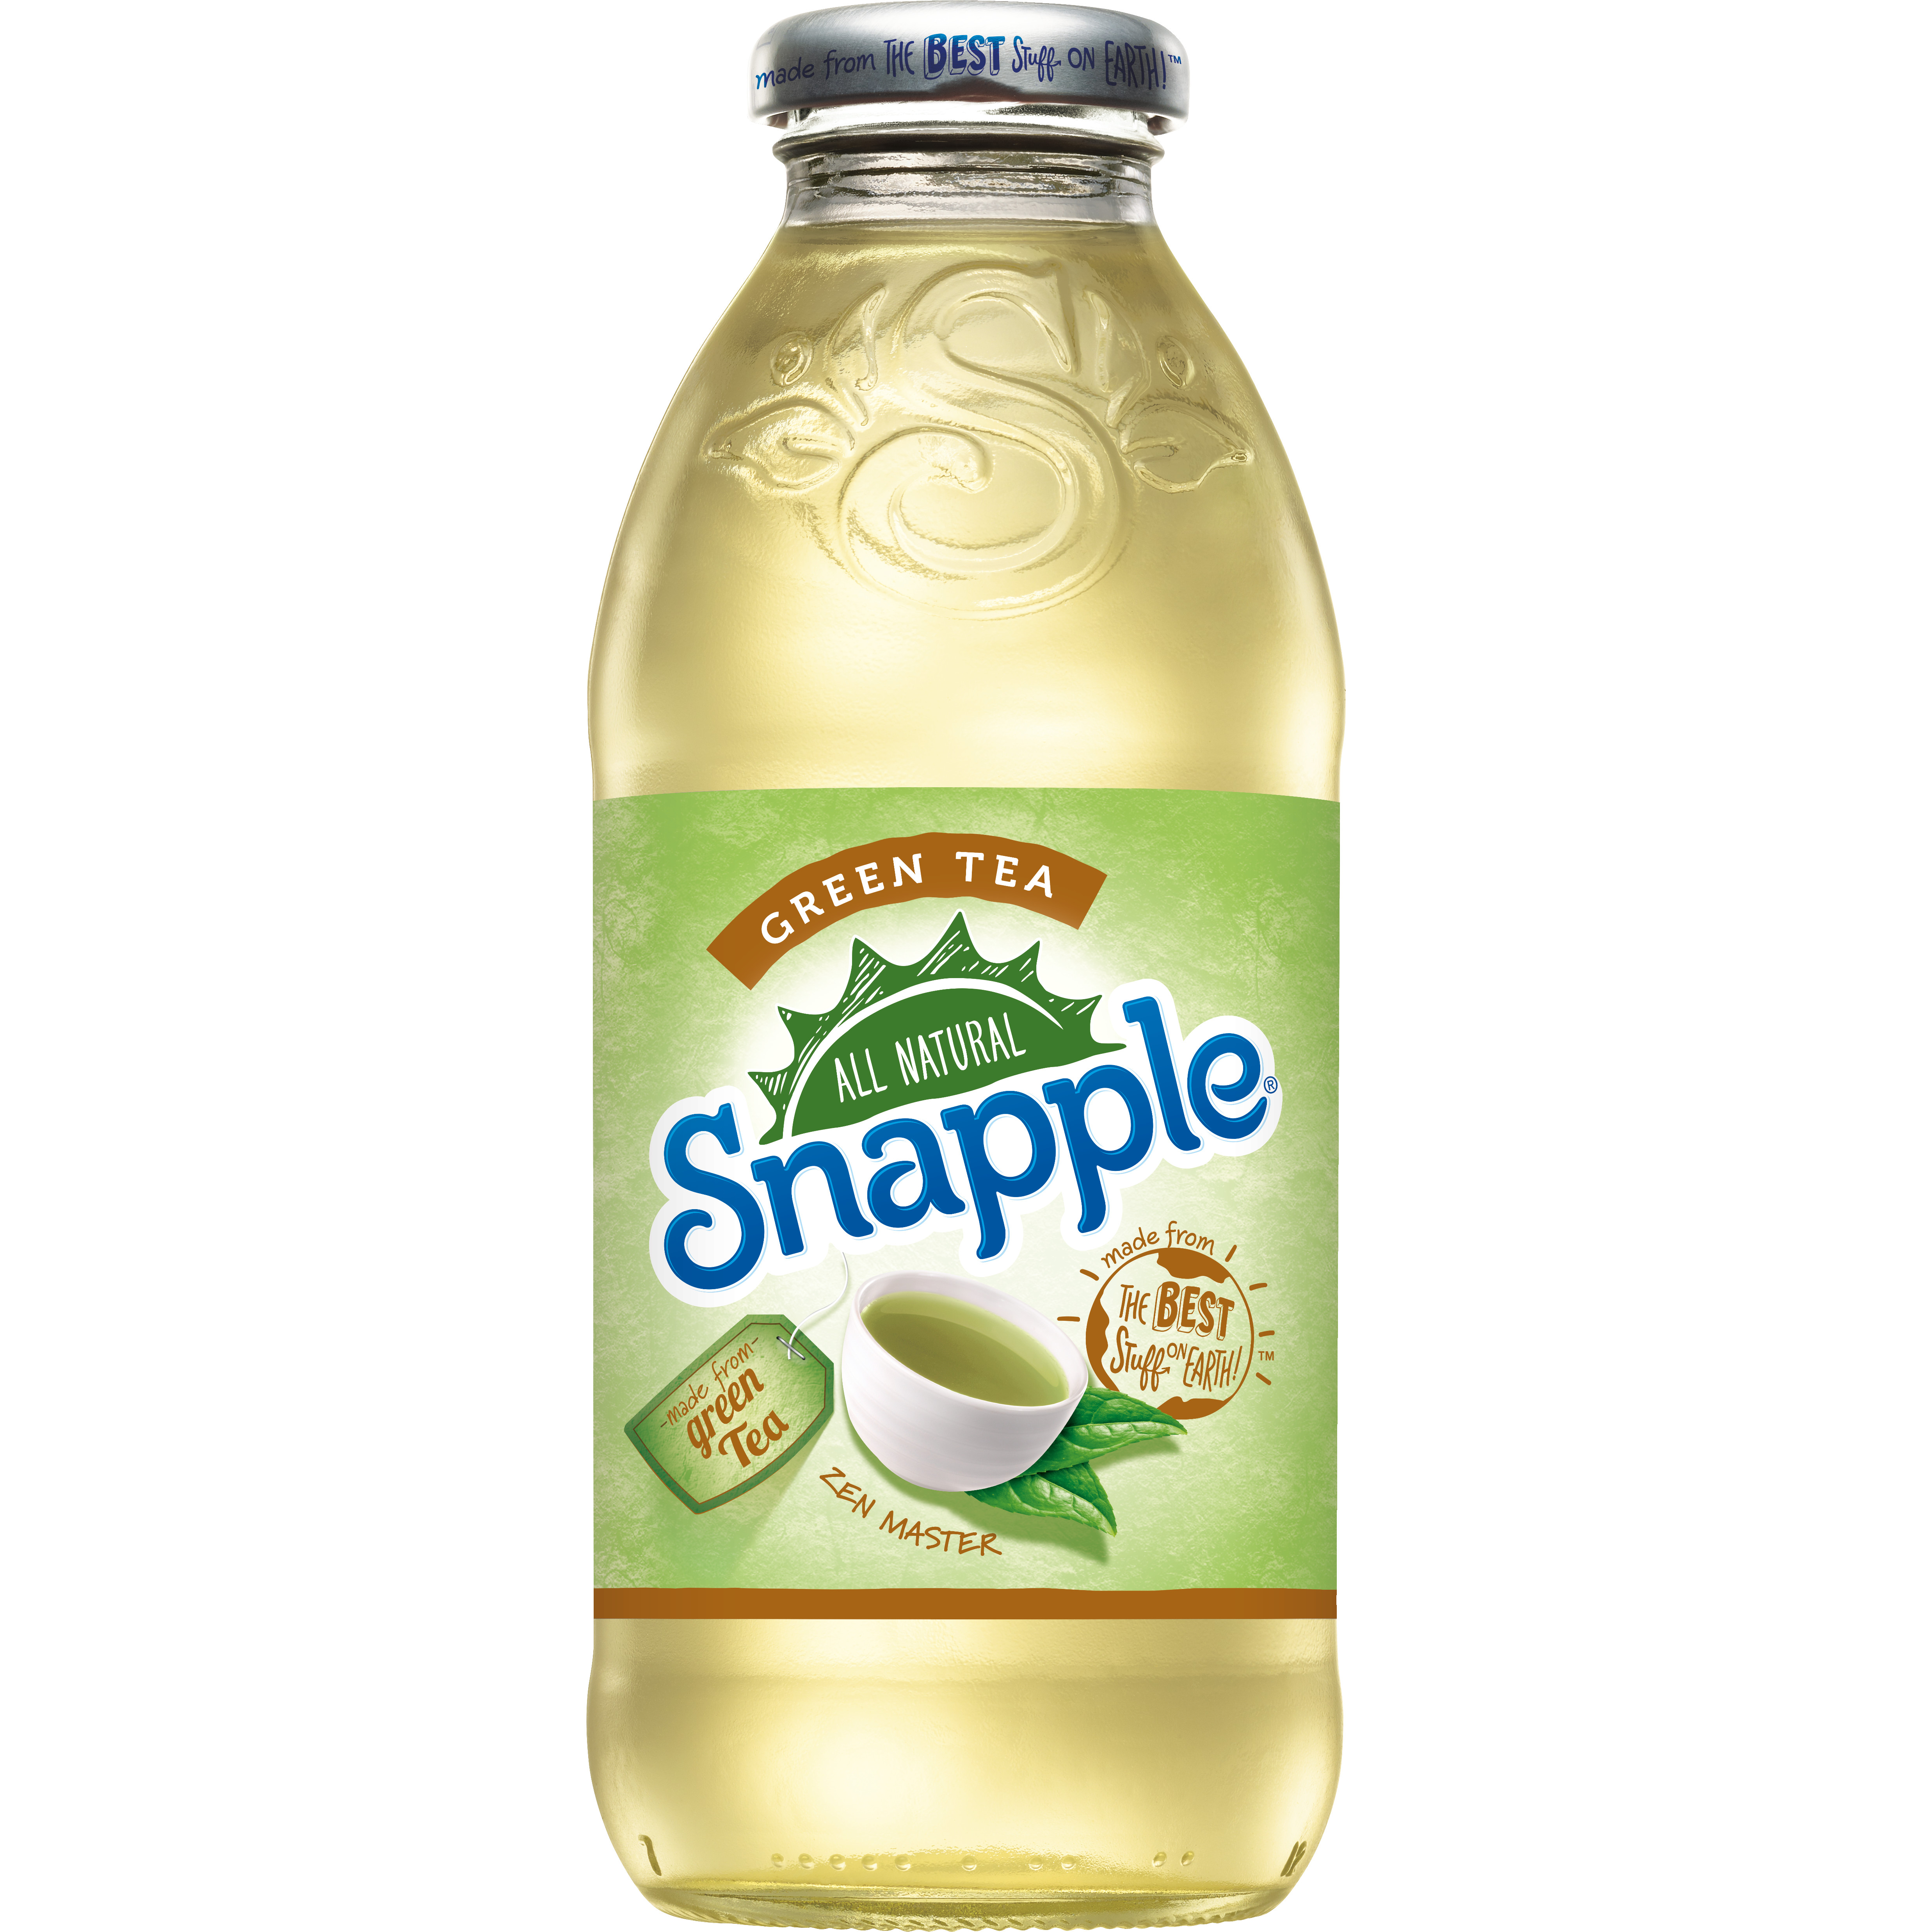 Snapple Green Tea, 16 fl oz